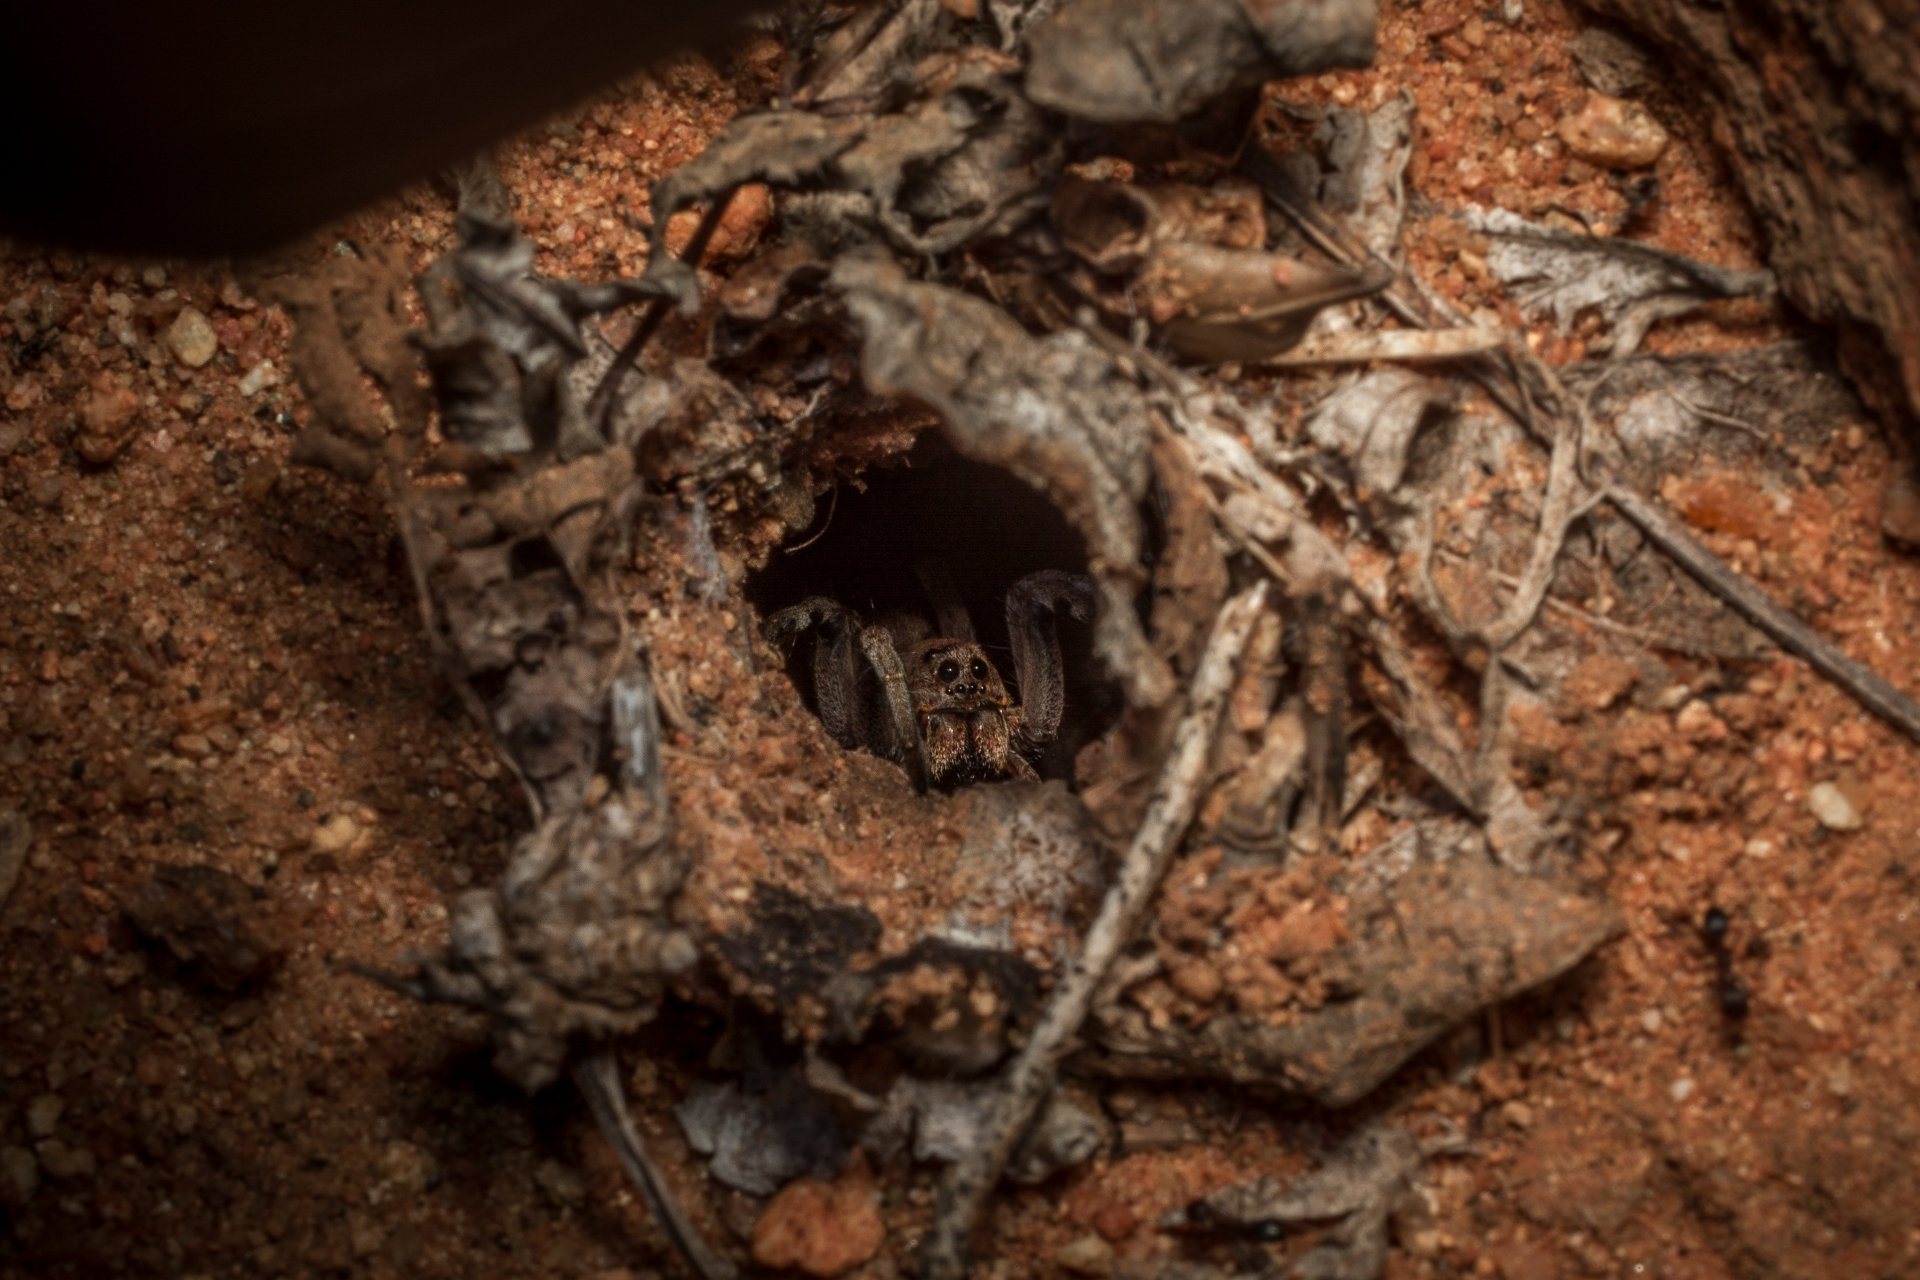 Wolf spiders can dig deep burrows that can be up to 25cm in length. They often wait at the mouth of the burrow for a prey to unwittingly pass by, so they can hunt it down. Photo: Samuel John